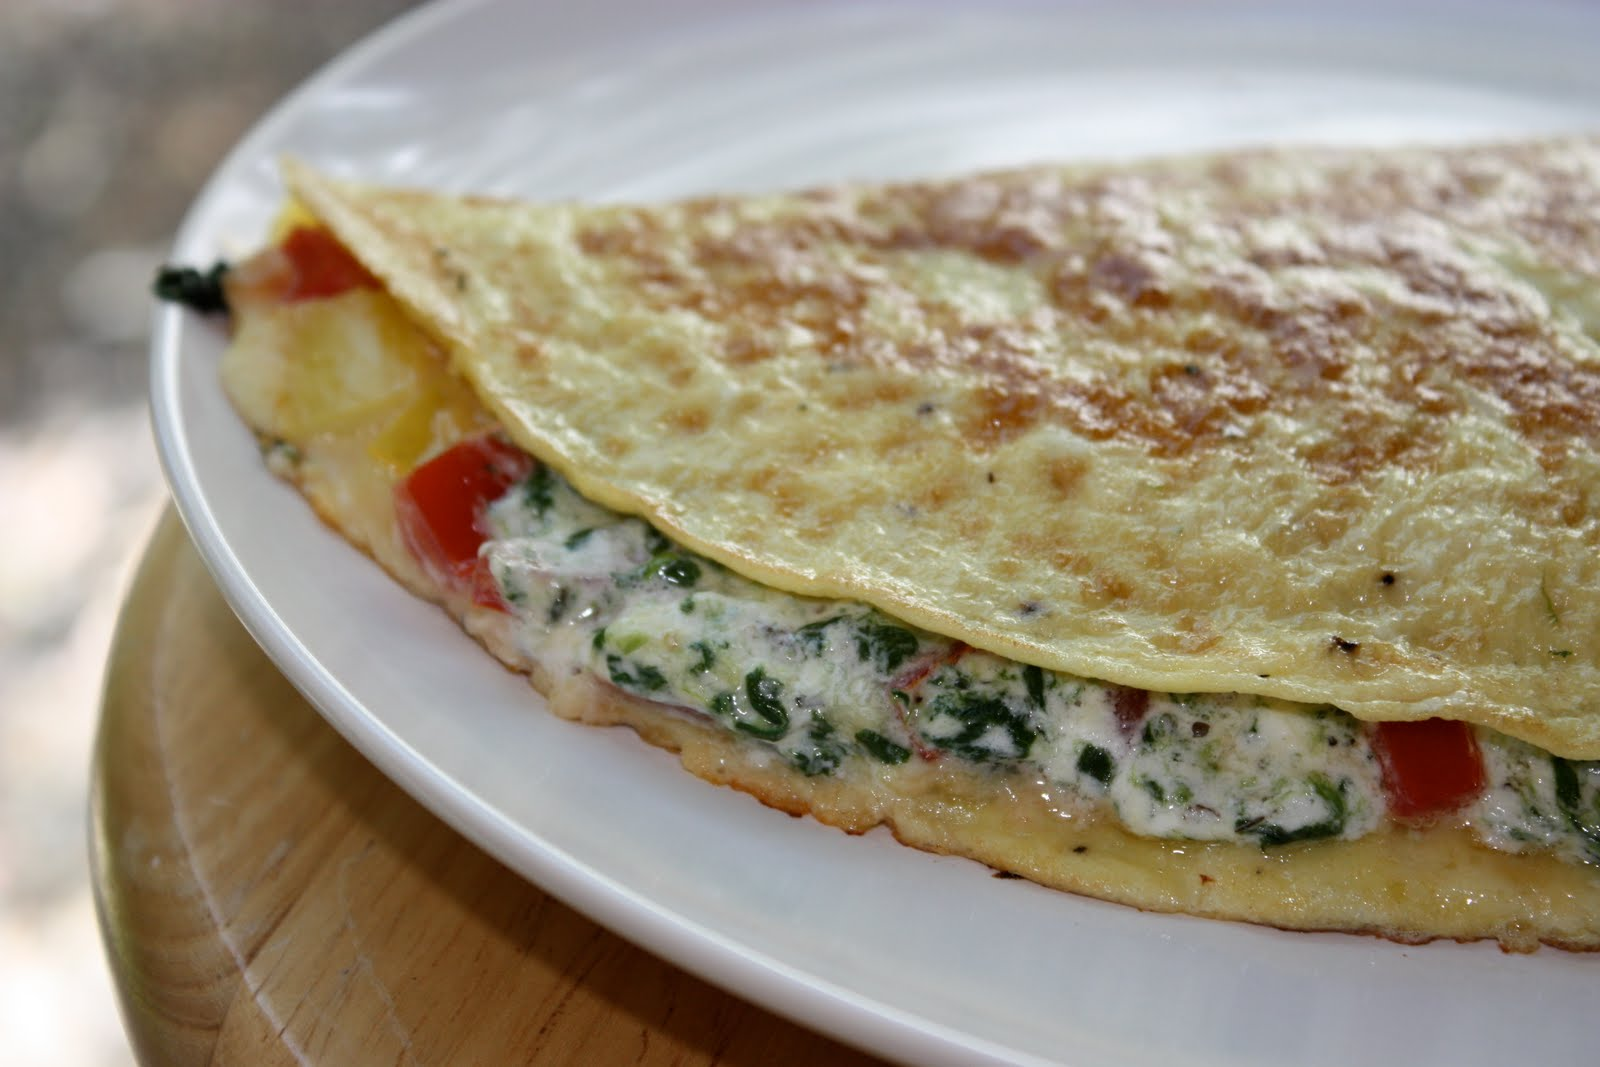 The Mothership's Galley: Herbed Goat Cheese & Vegetable Omelet